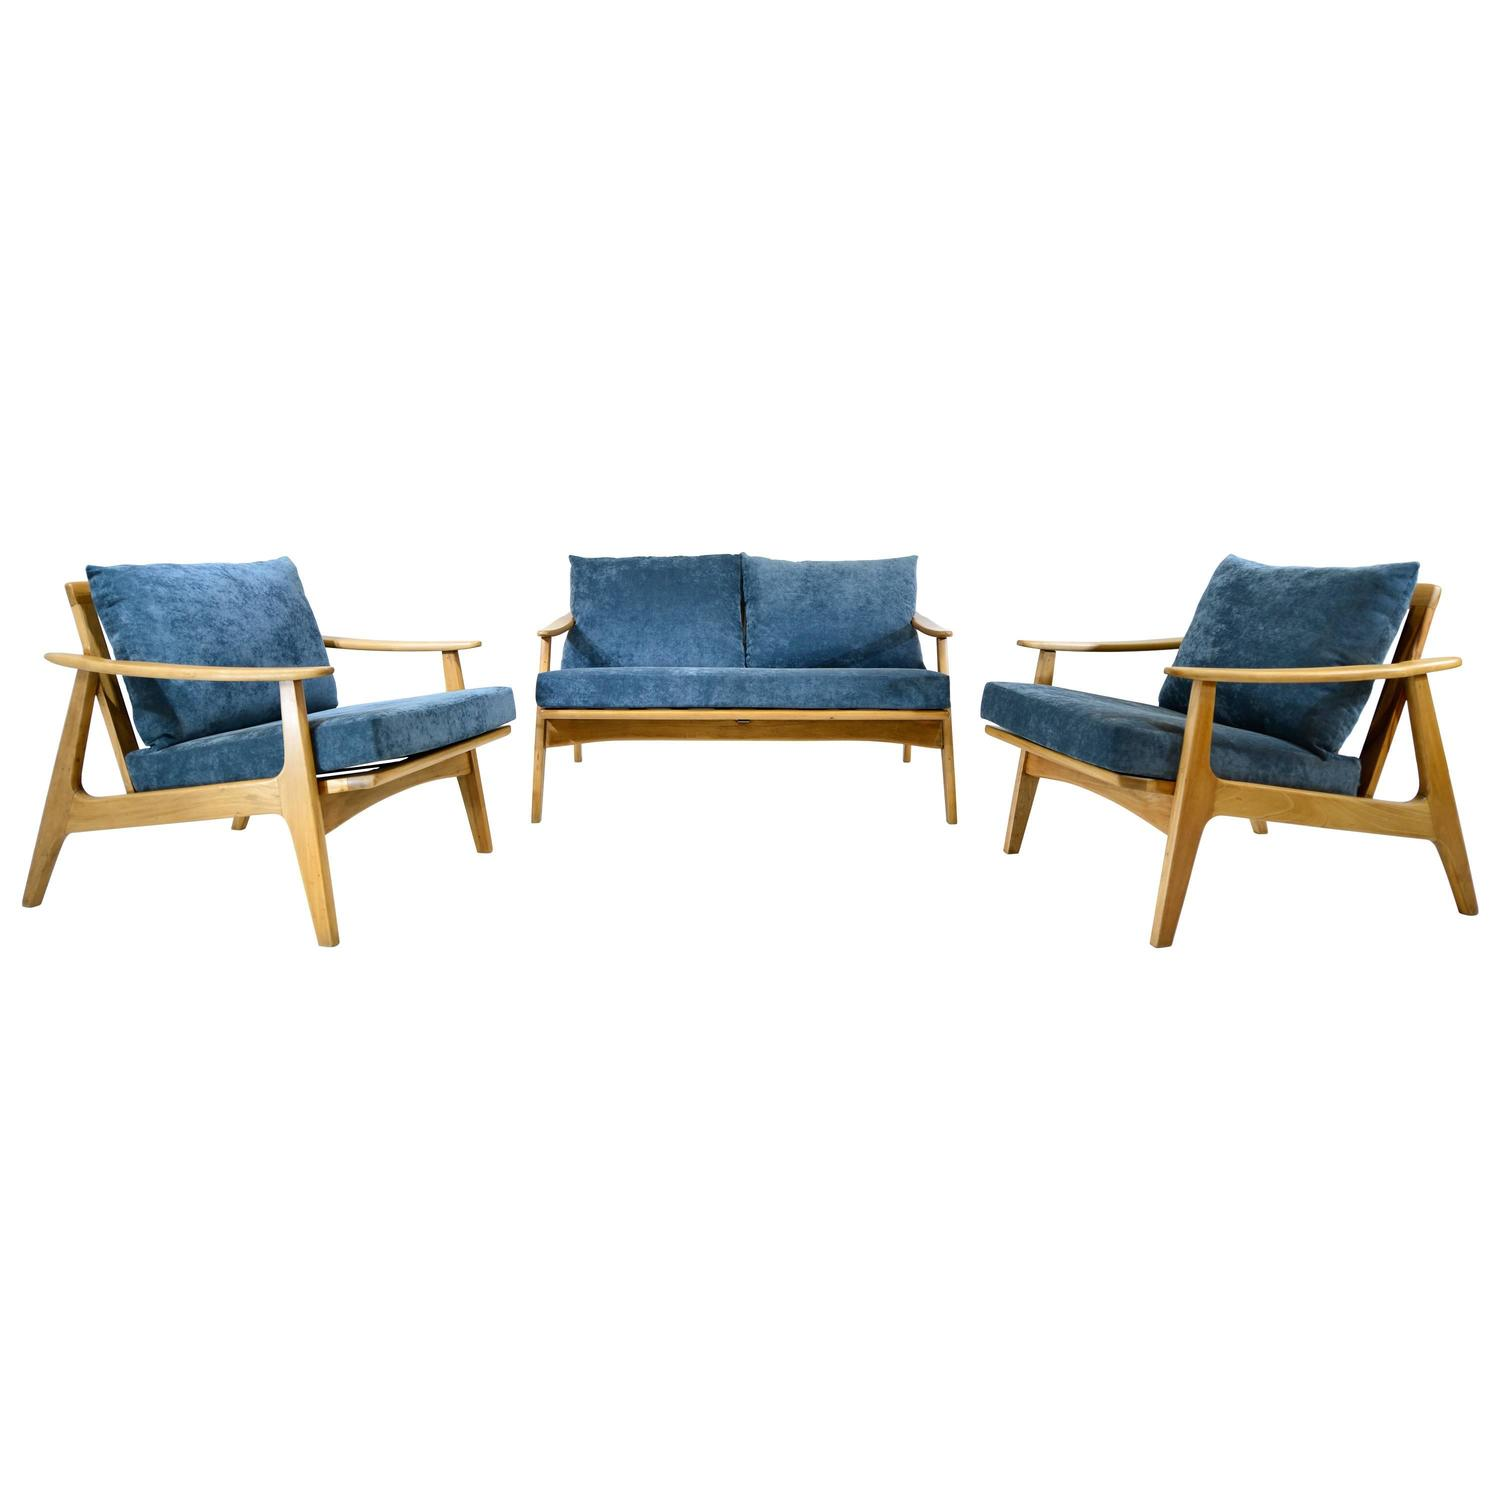 Three piece living room set for sale at 1stdibs for 10 piece living room set